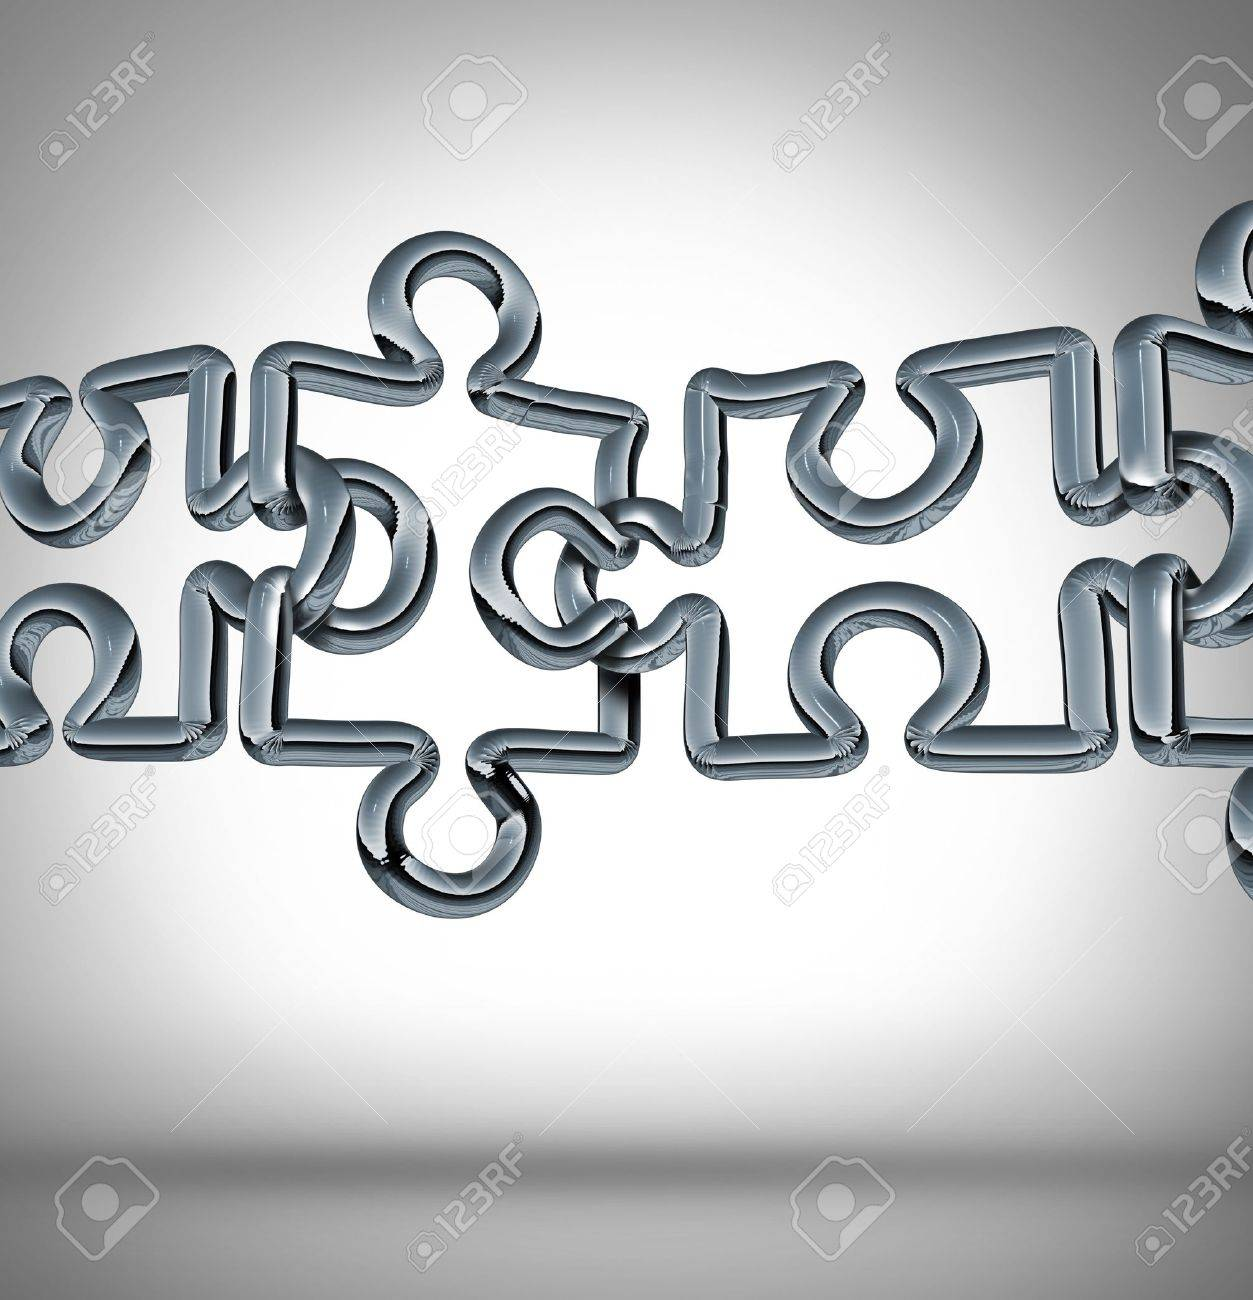 Connection bridge and bridging the gap in business cooperation as a concept with a group of three dimensional metal chain links in a network shaped as puzzle pieces connected together to form a strong financial team Stock Photo - 17997203